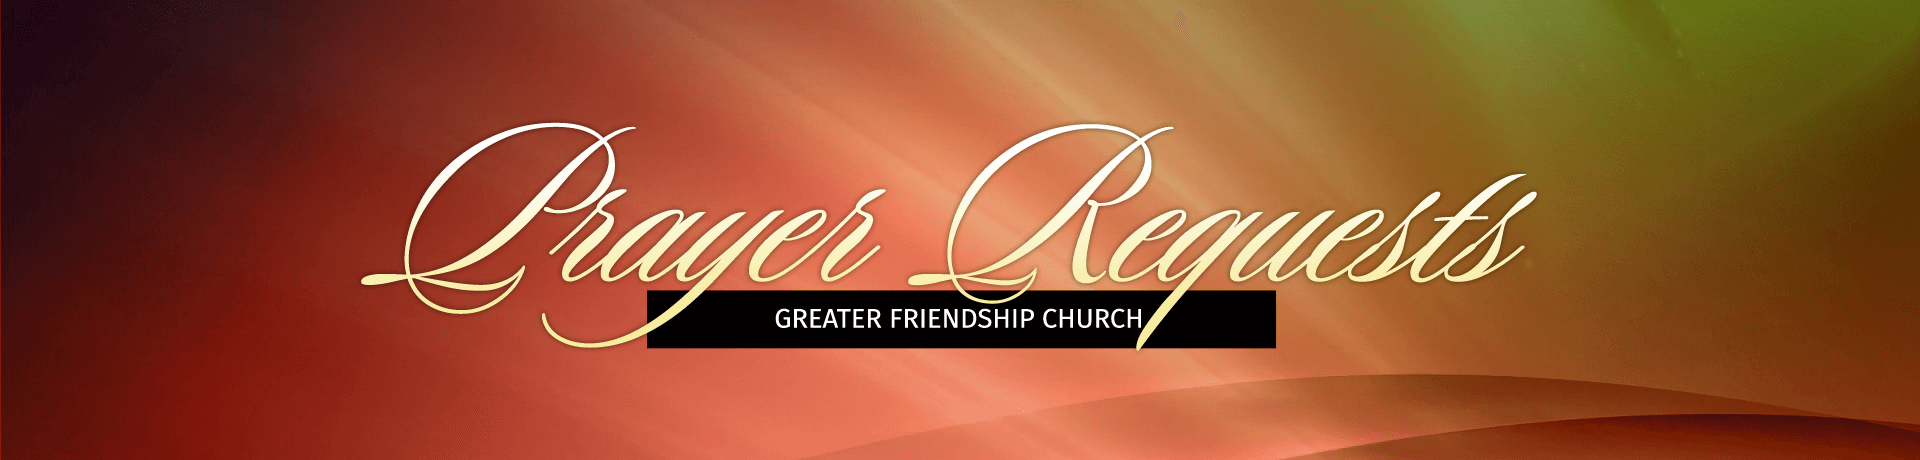 Greater Friendship Church - Prayer Request